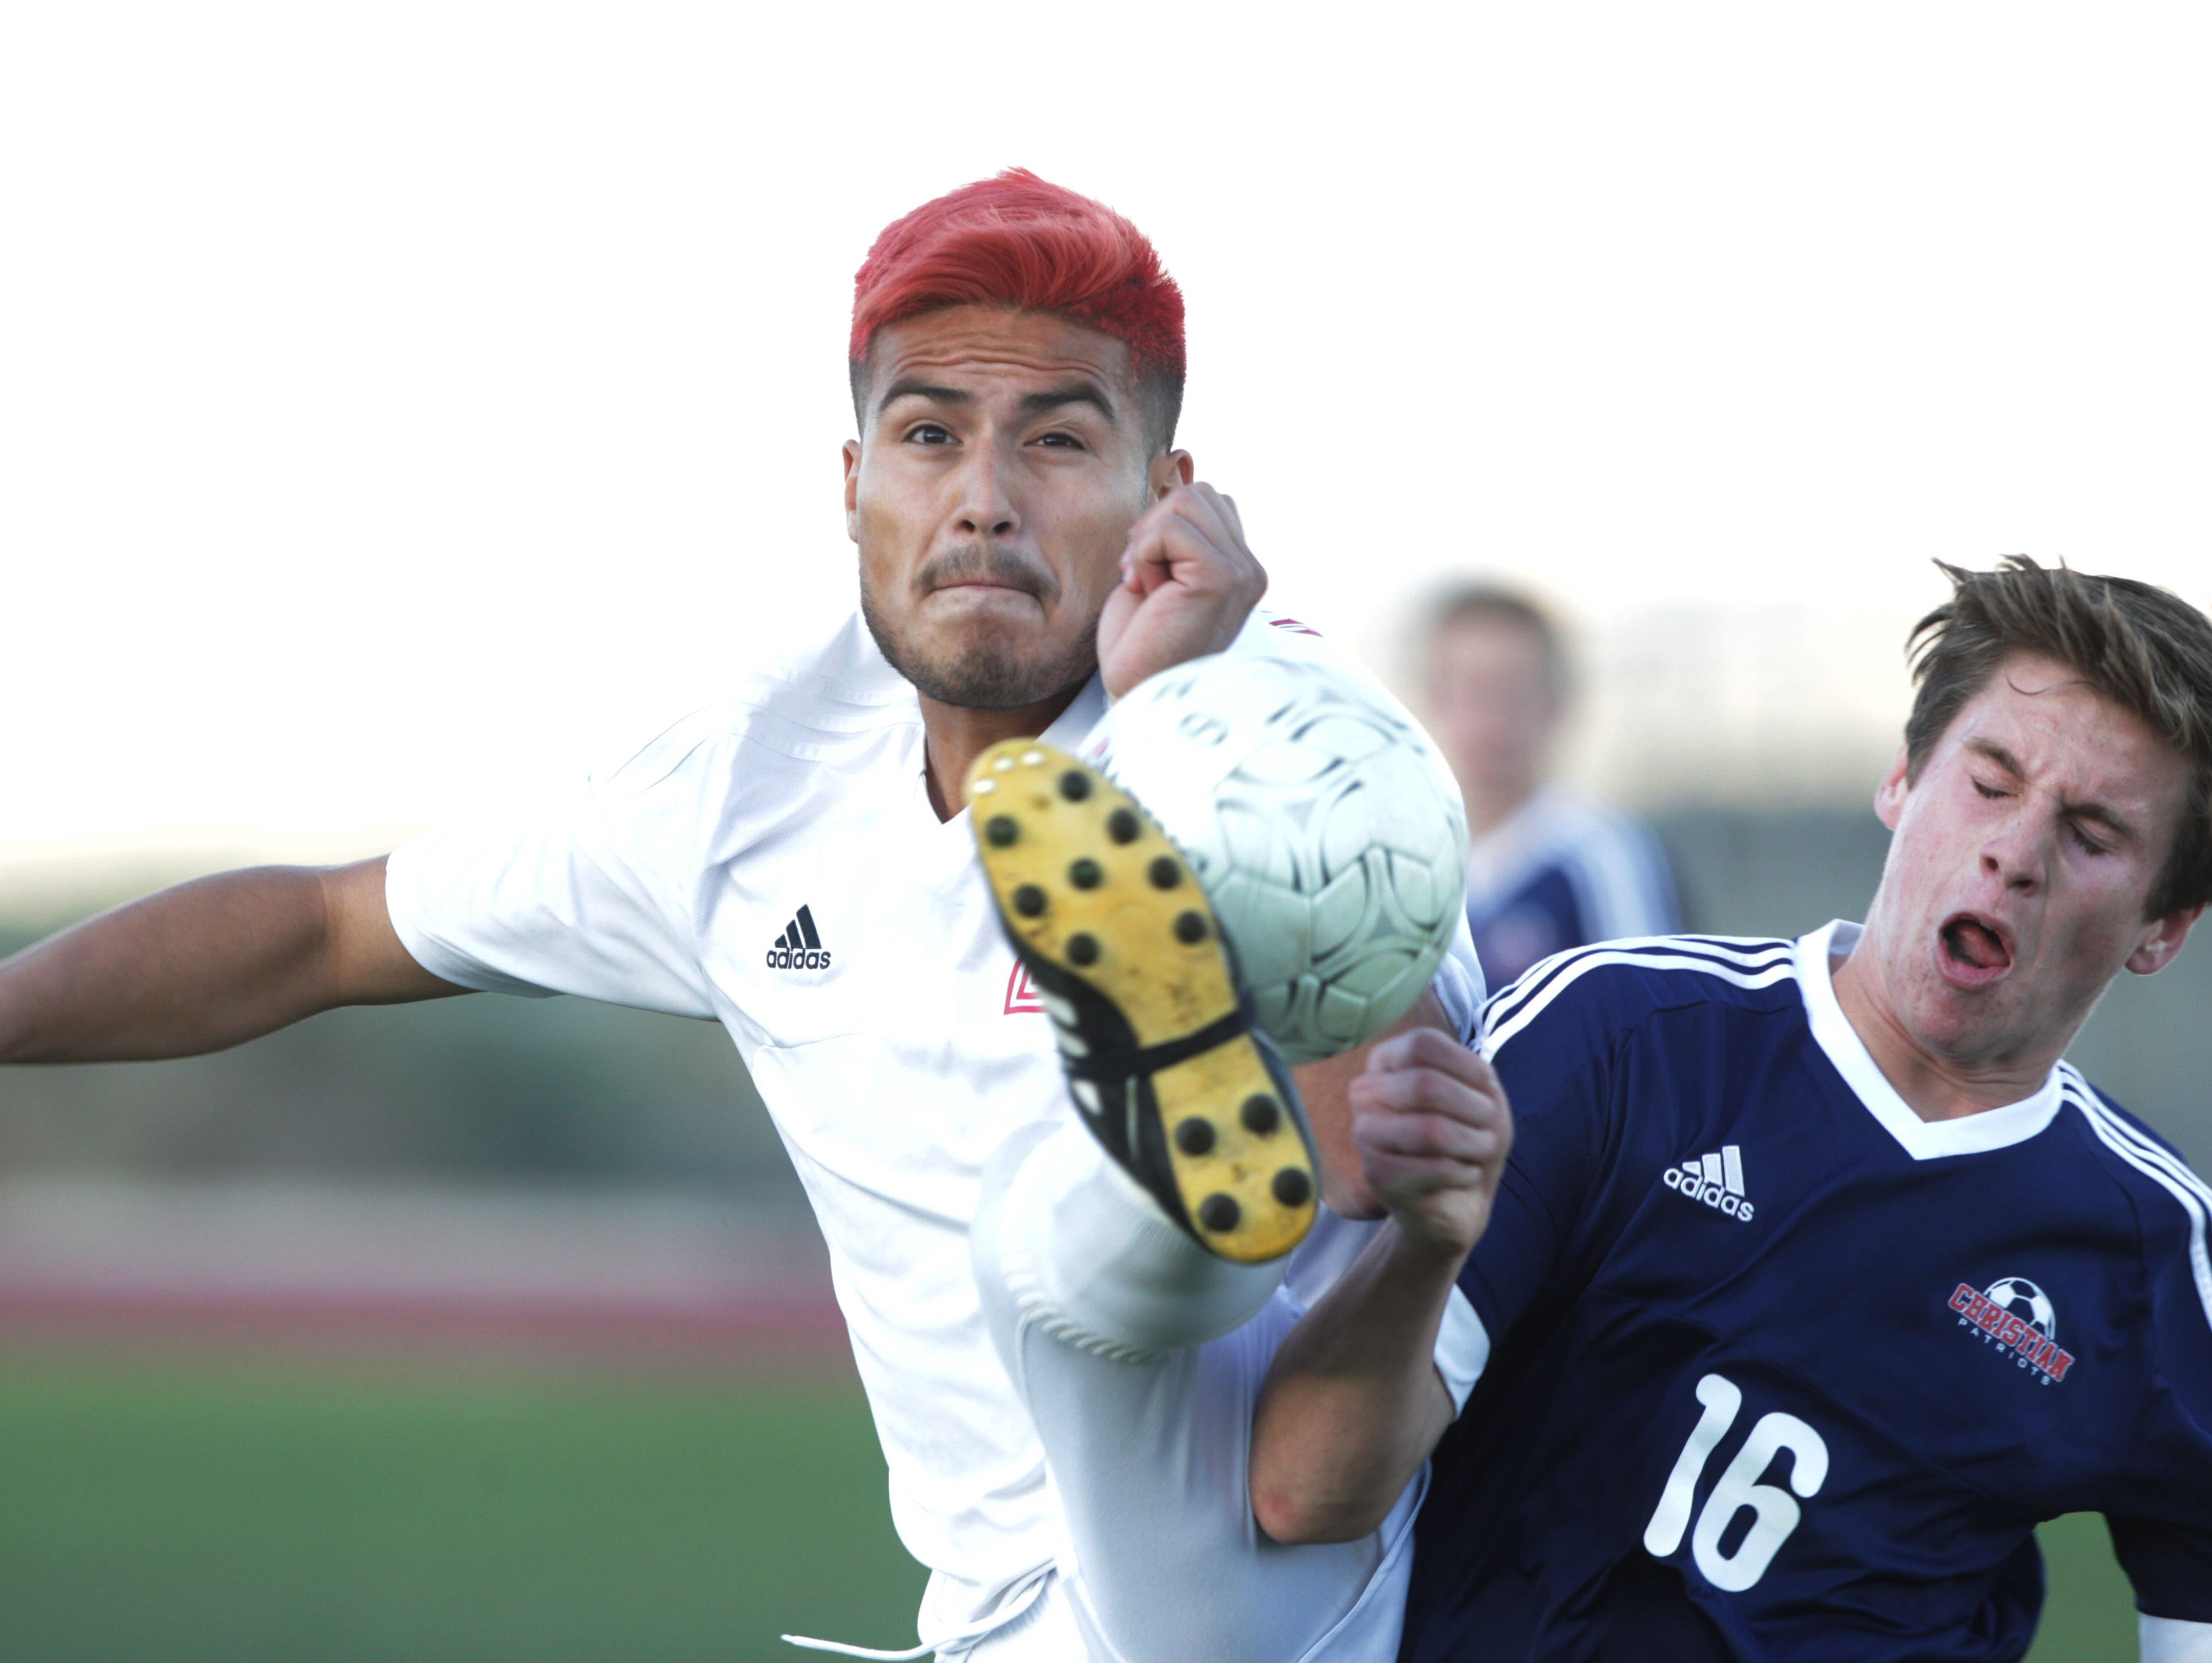 At left, Julio Rivera of Desert Mirage High School stops the ball from opponent Jake Downer of Christian High School in El Cajon at Thermal. The Rams continue to be undefeated.